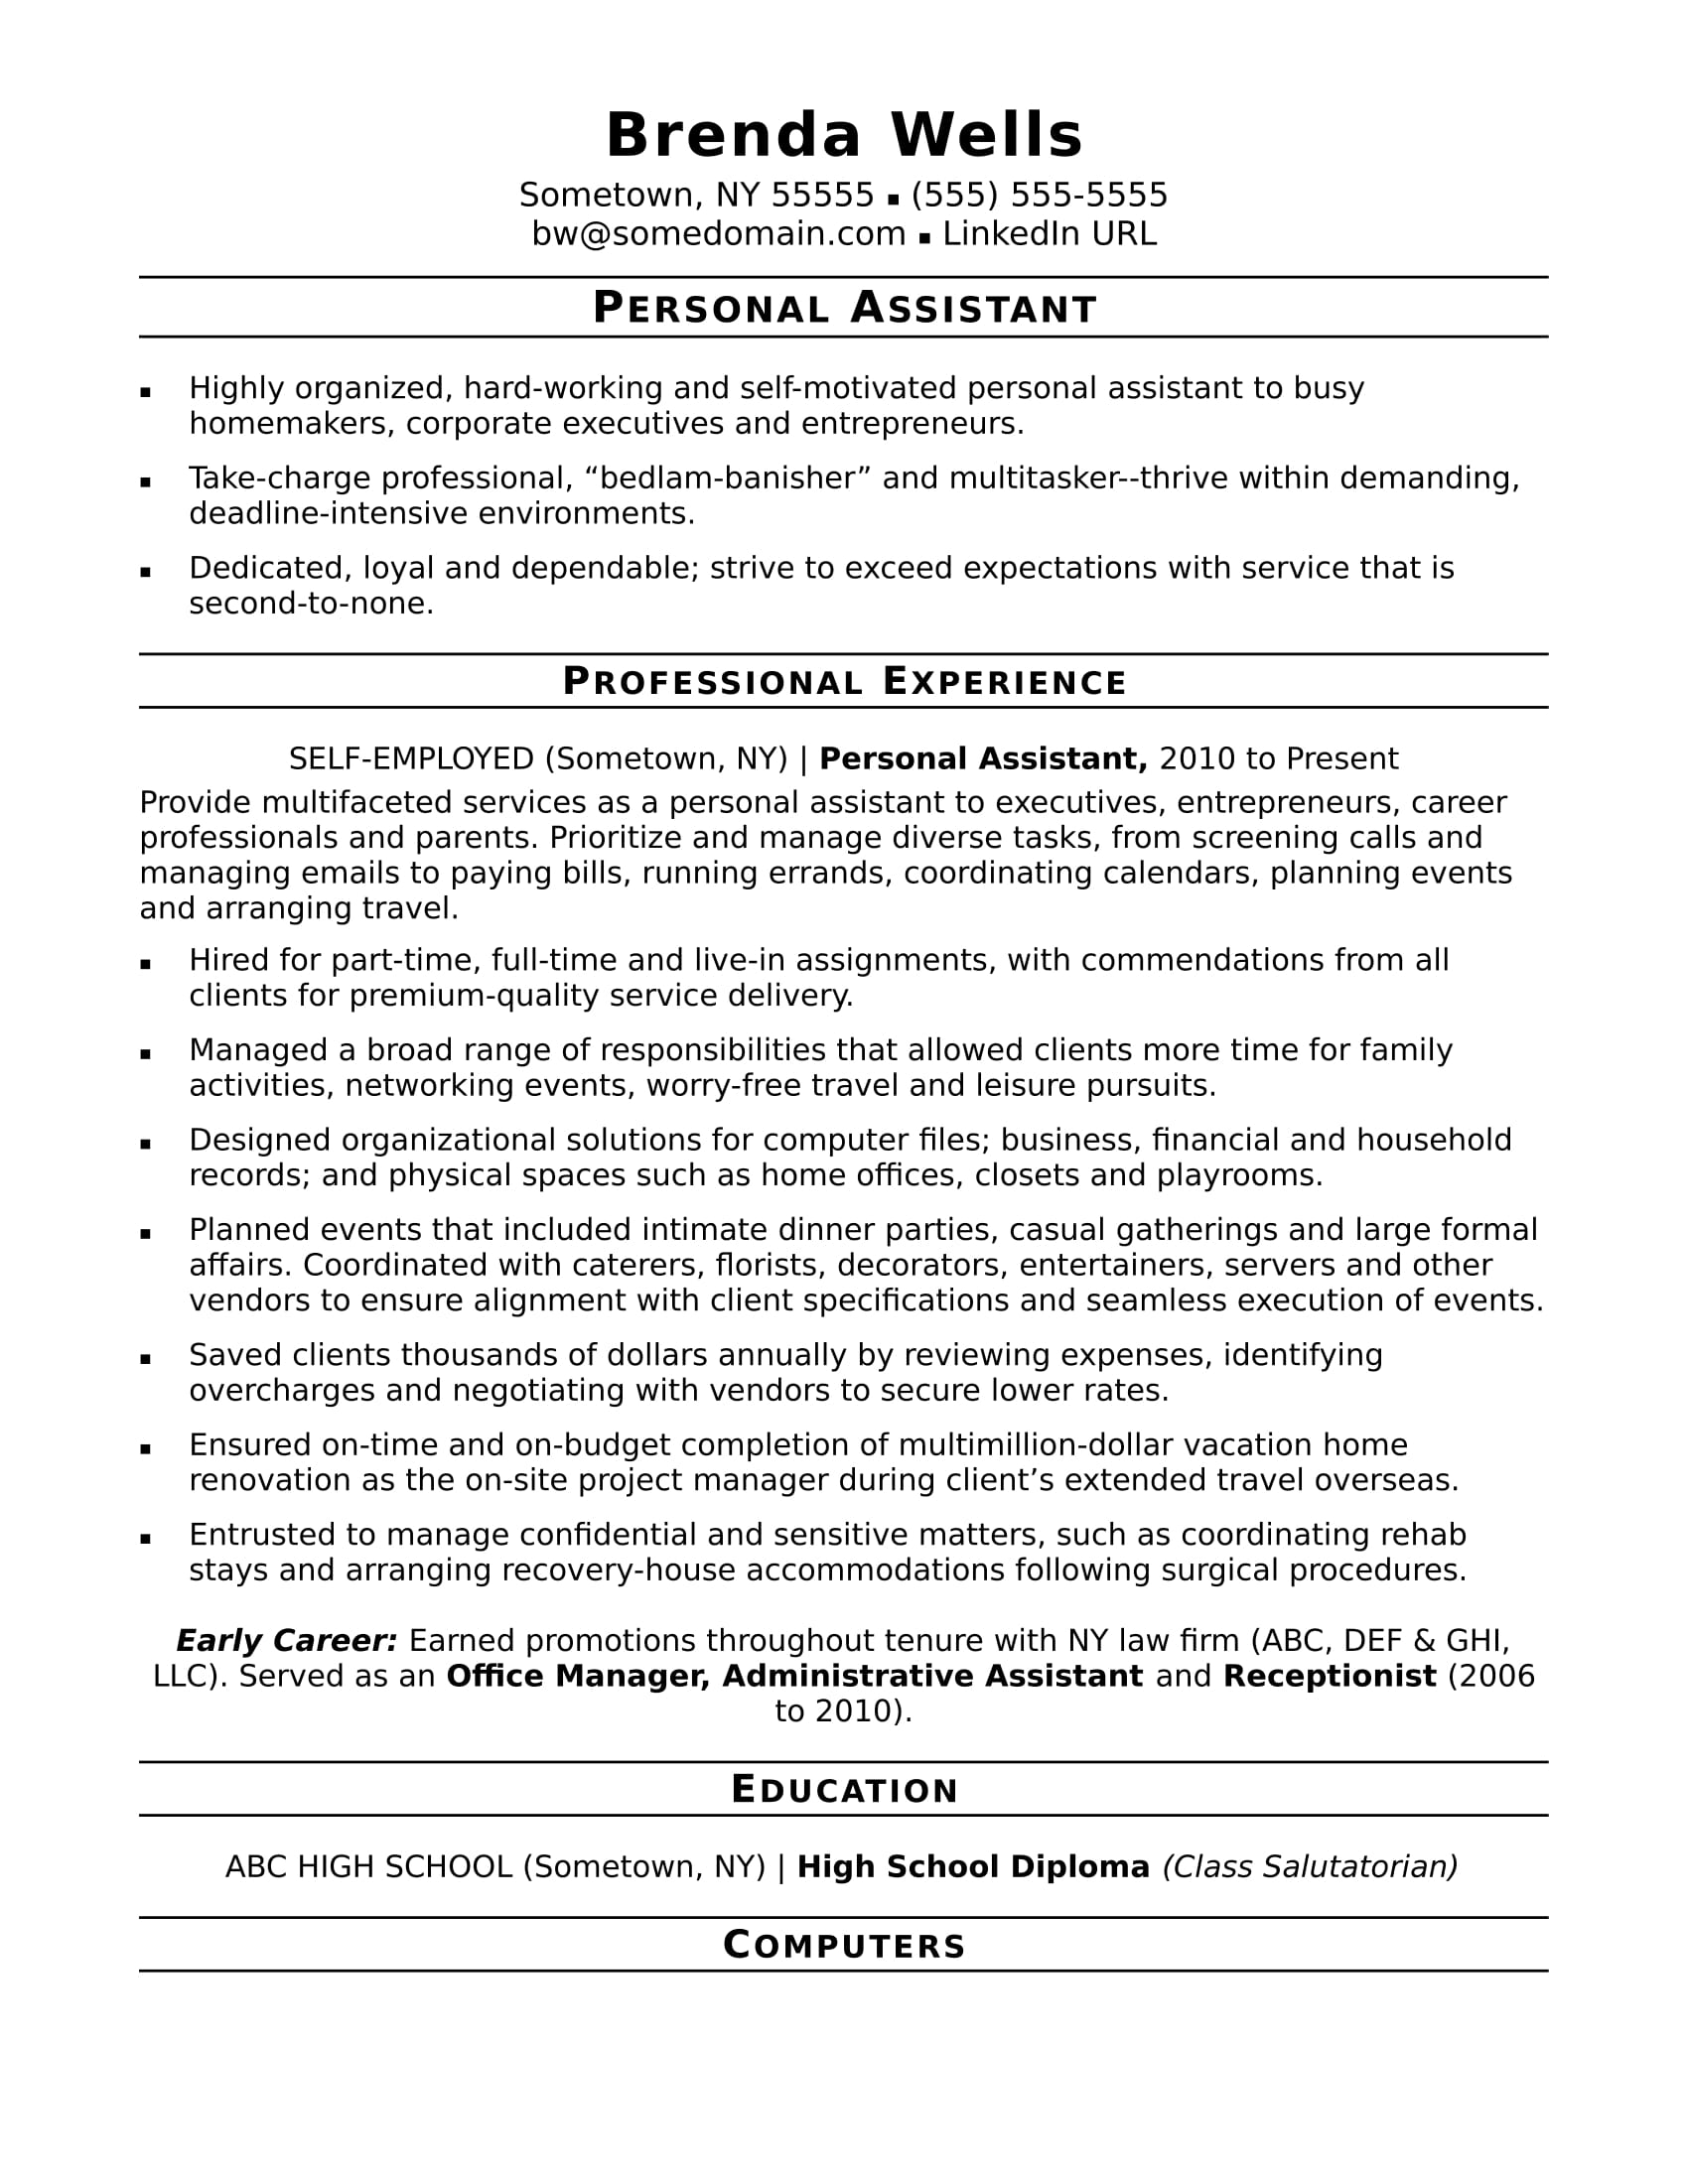 personal assistant resume sample monster home health aide professional highlights Resume Home Health Aide Resume Sample